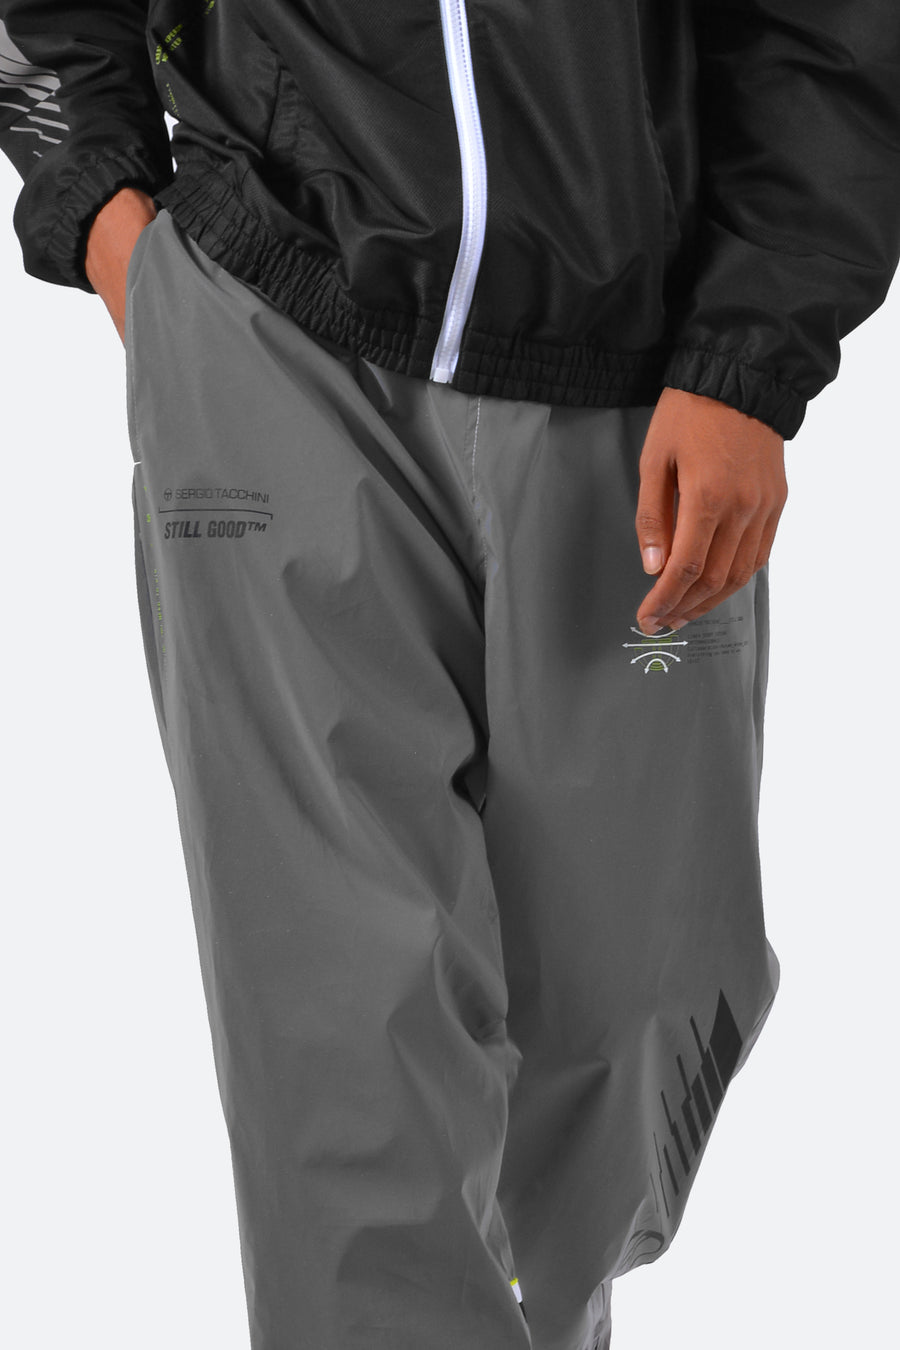 ST Cryo Reflective Track Pants | Still Good